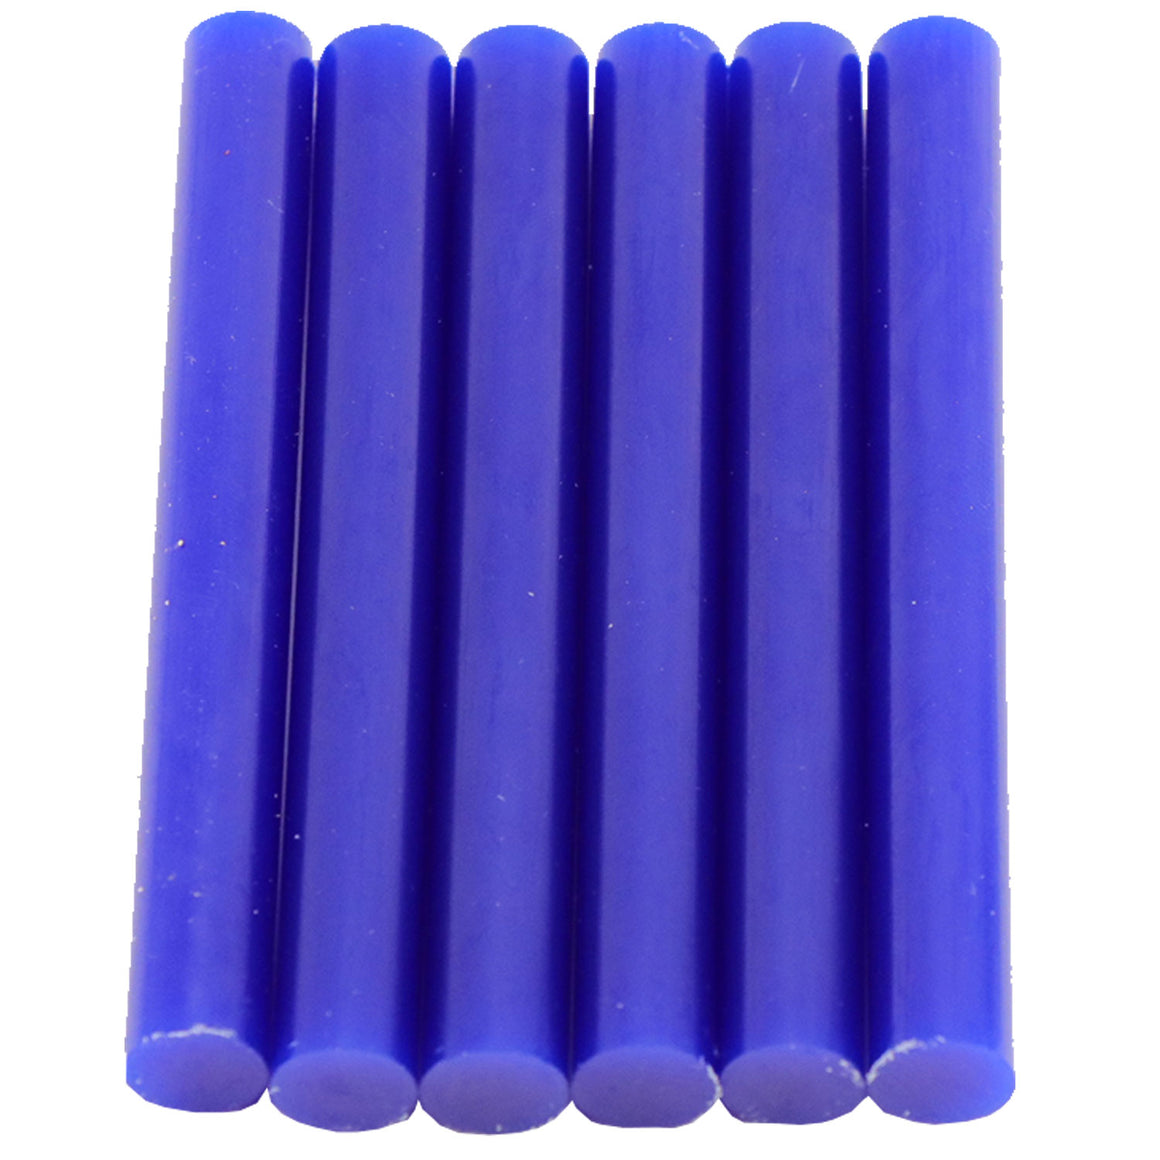 Blue Hot Glue Sticks Full Size